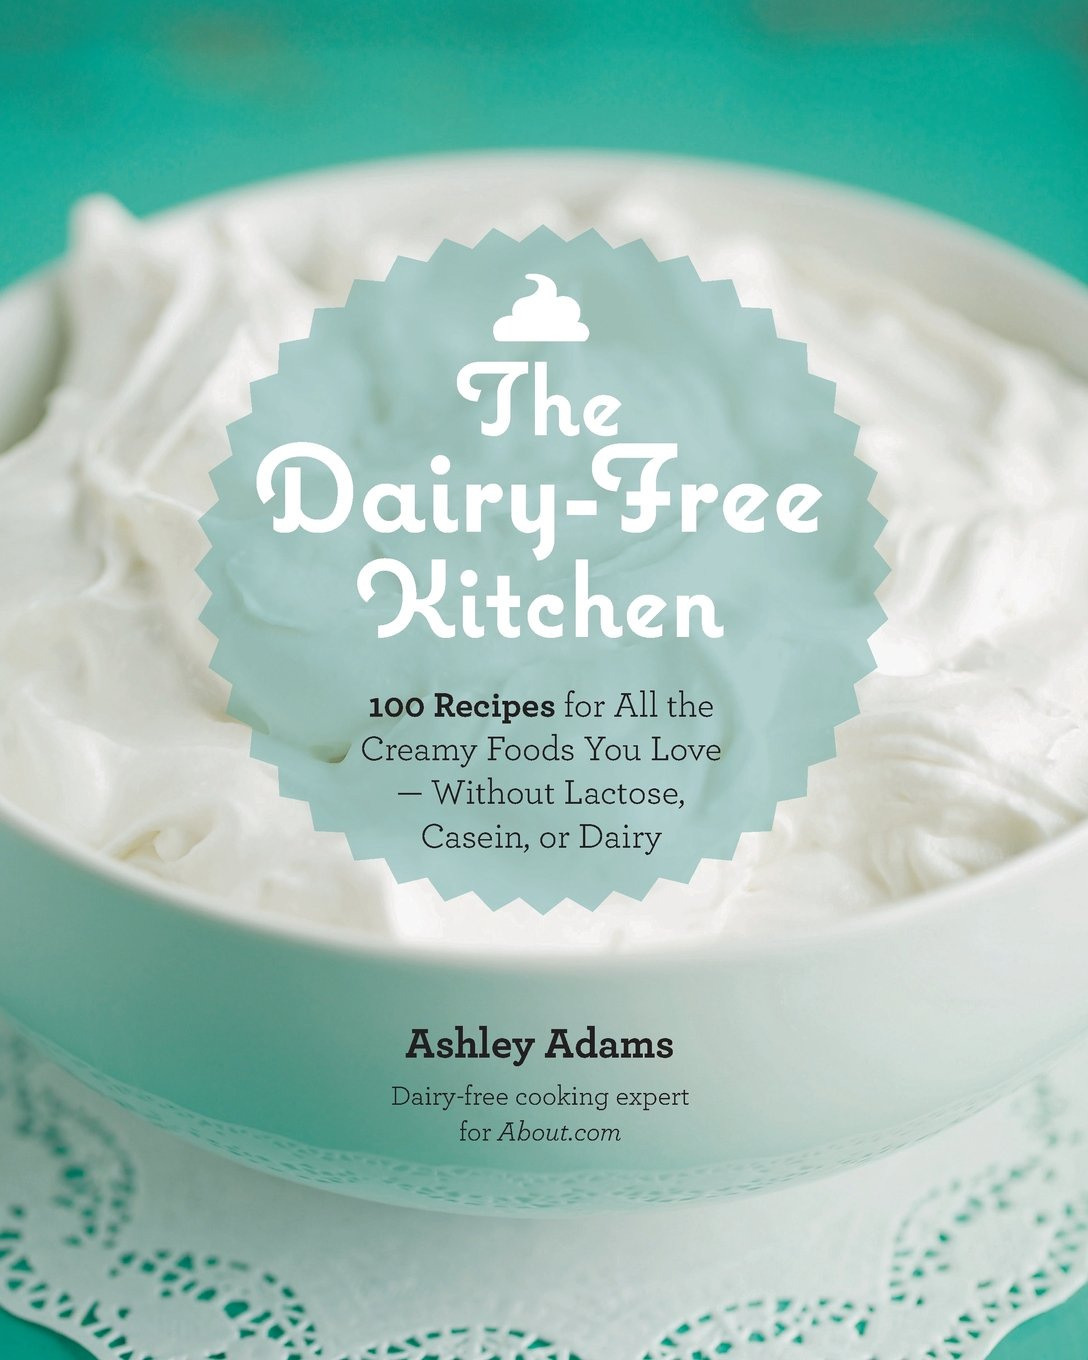 Dairy Free Kitchen Recipes Love Without Lactose product image